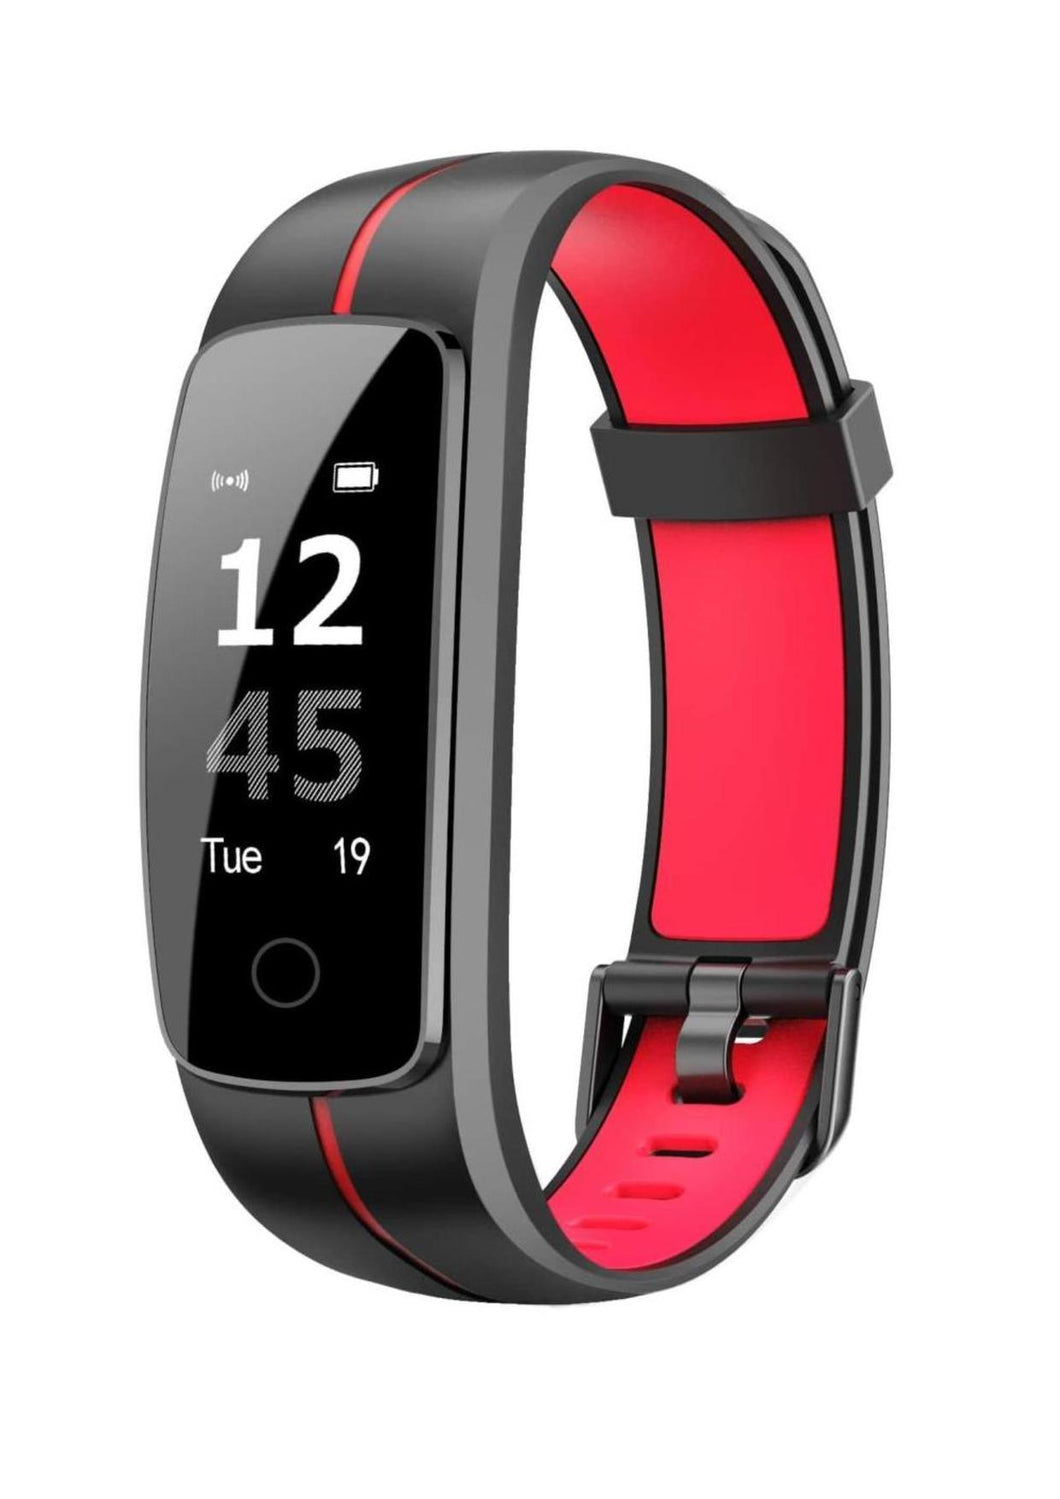 Stride - High Tech Activity Tracker for Kids - Black / Red Smart Watch shop cactus watches